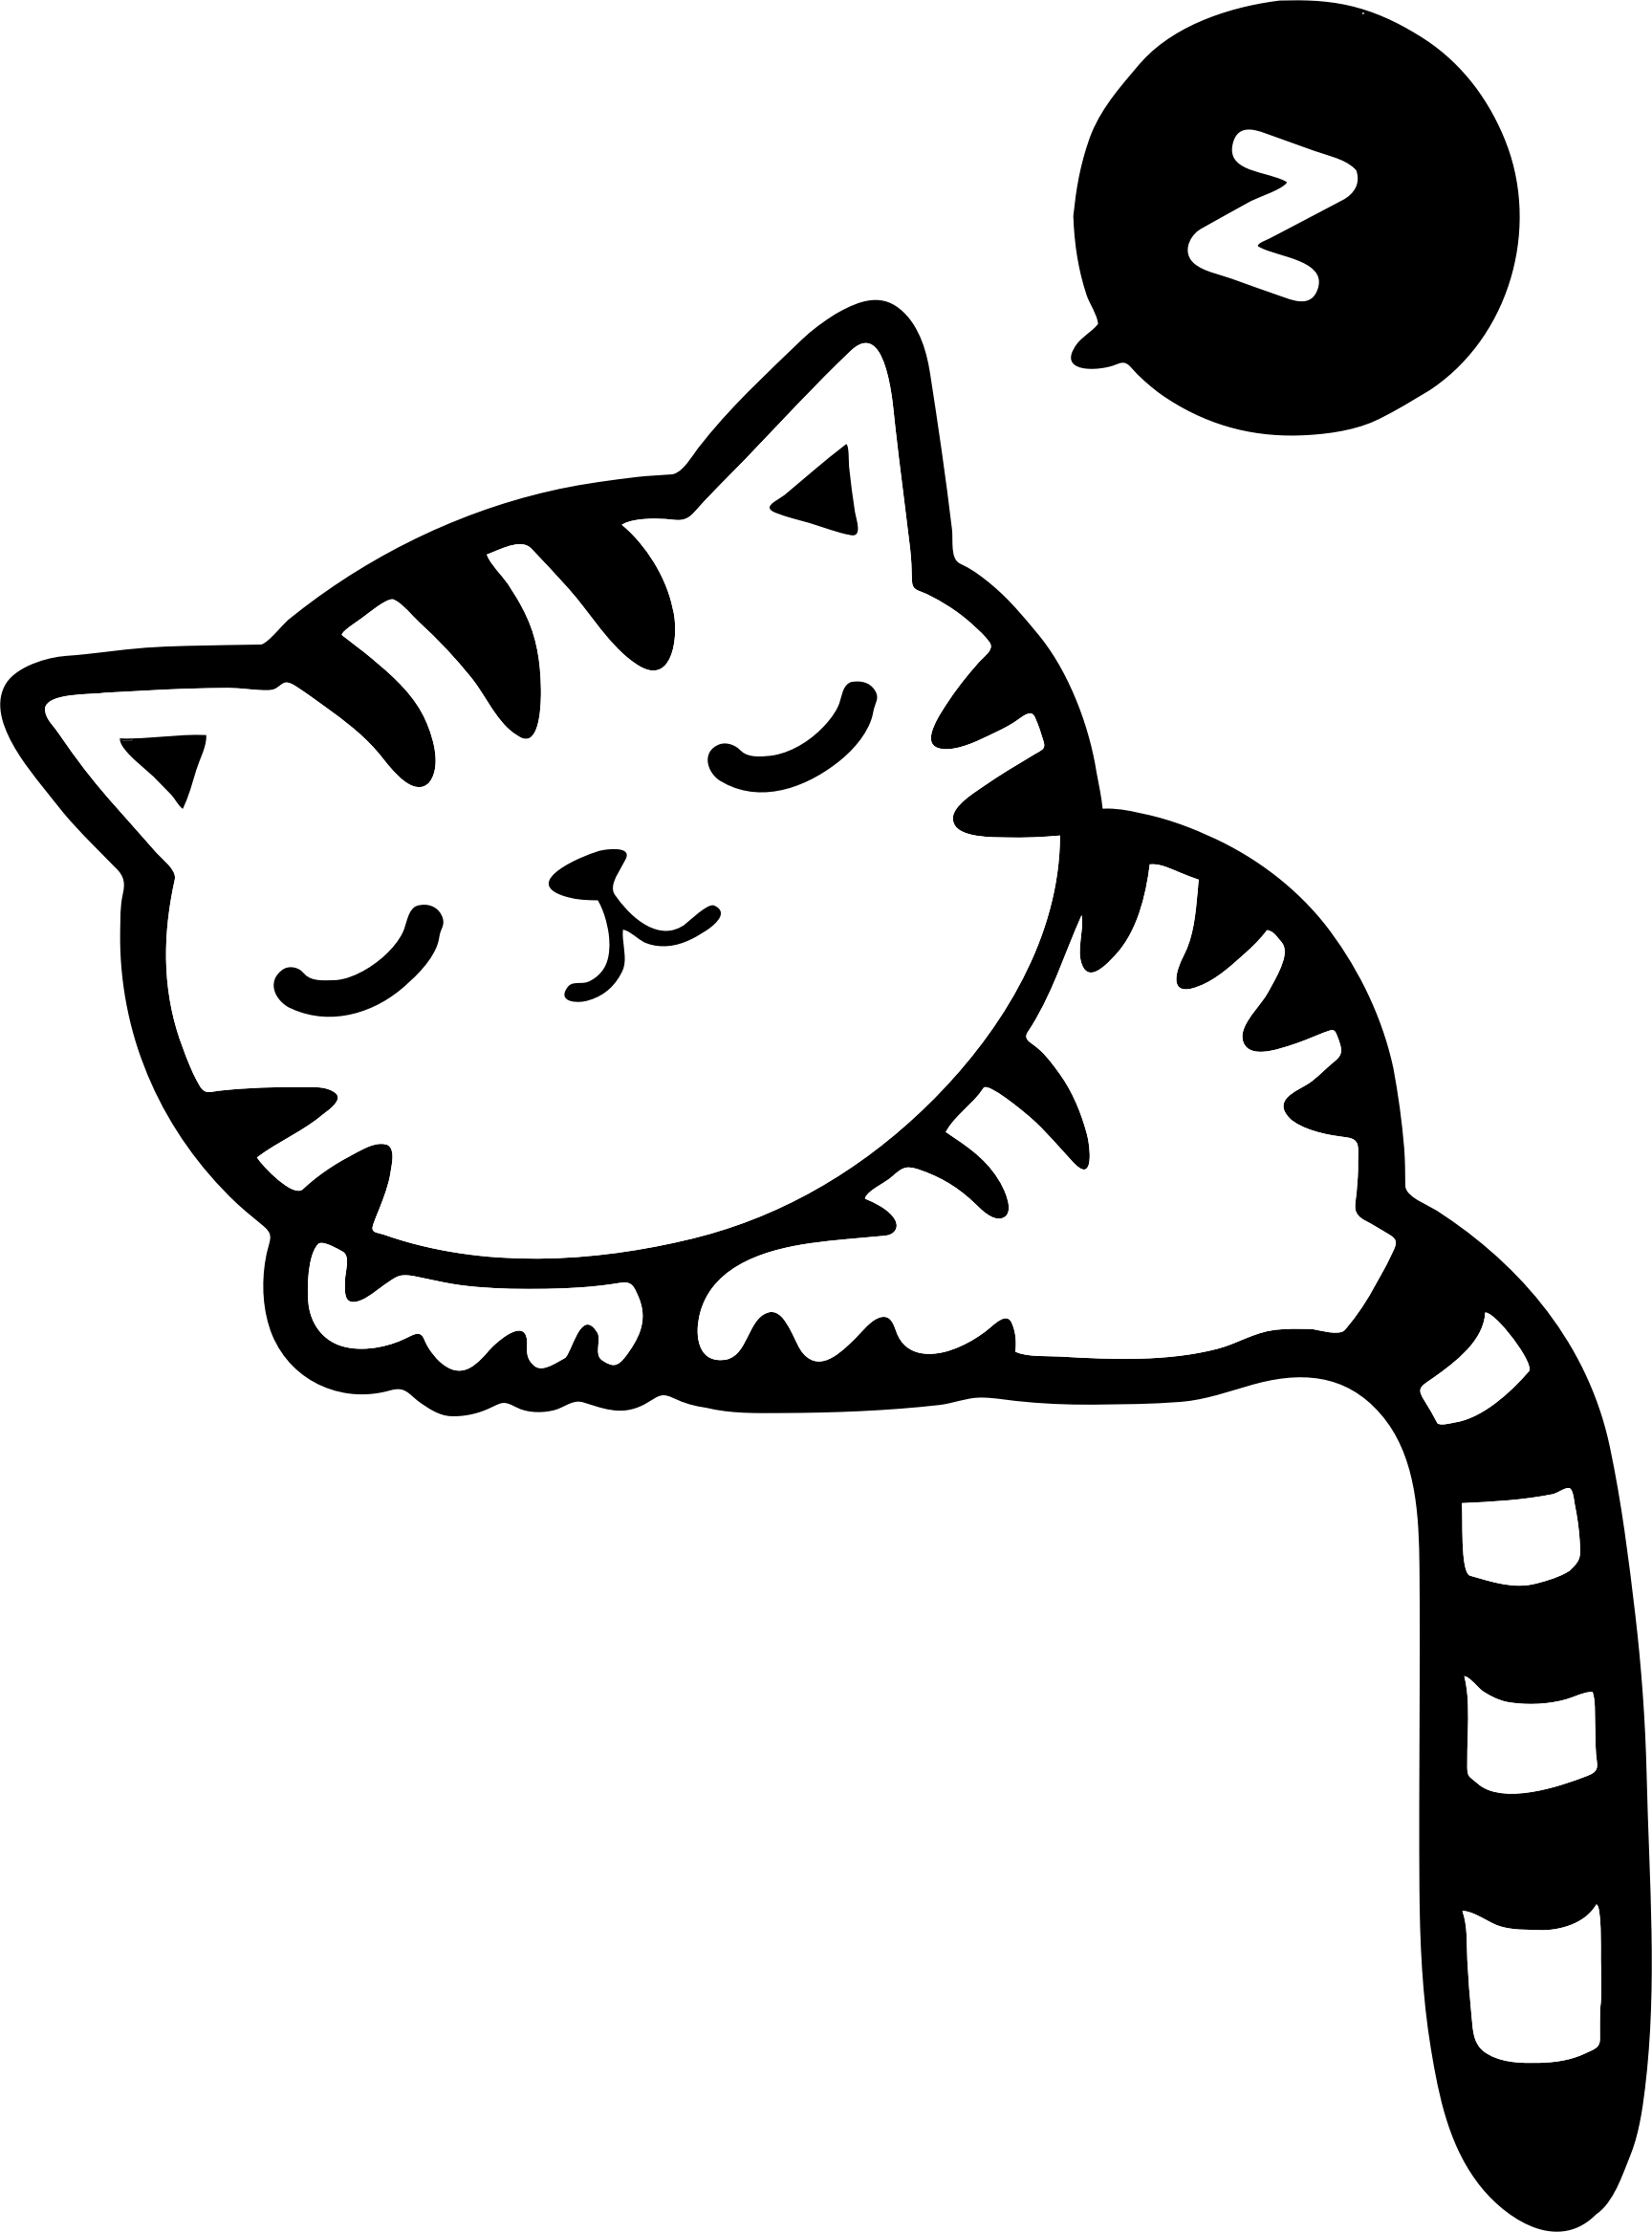 Sleeping Kitty Vector Clipart image - Free stock photo - Public ... svg black and white